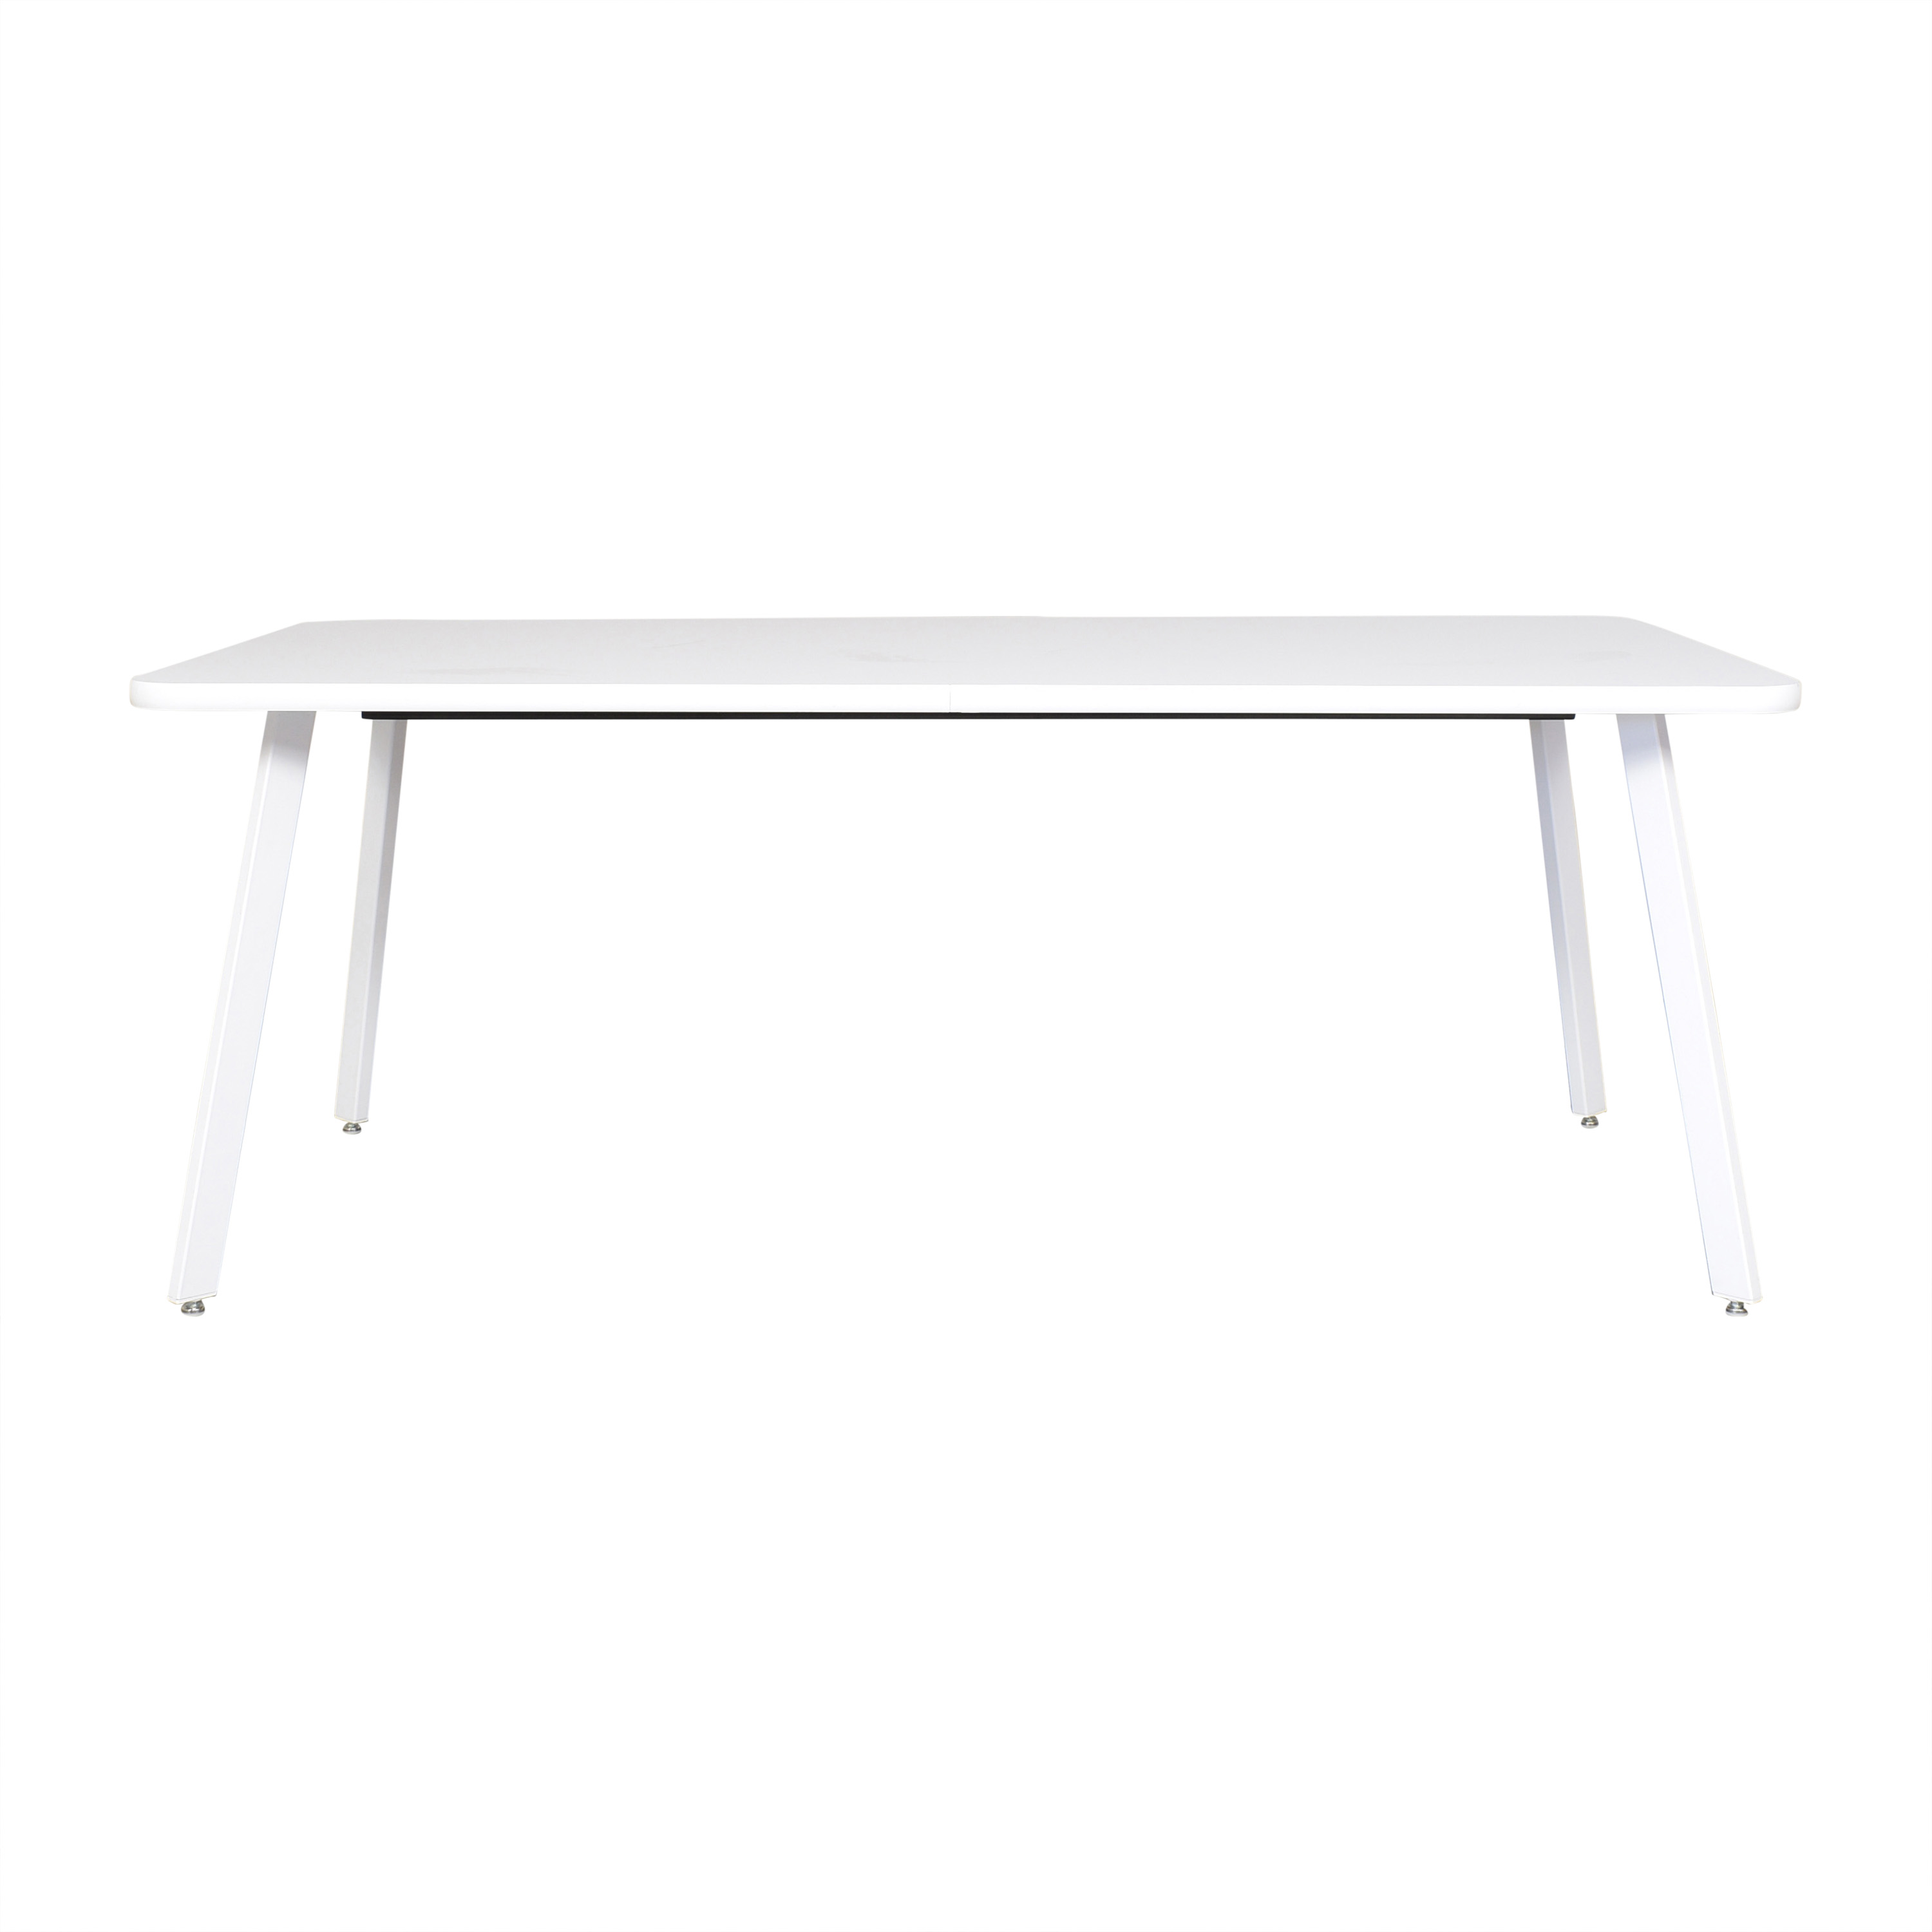 Knoll Rockwell Unscripted Rectangular Easy Table / Tables